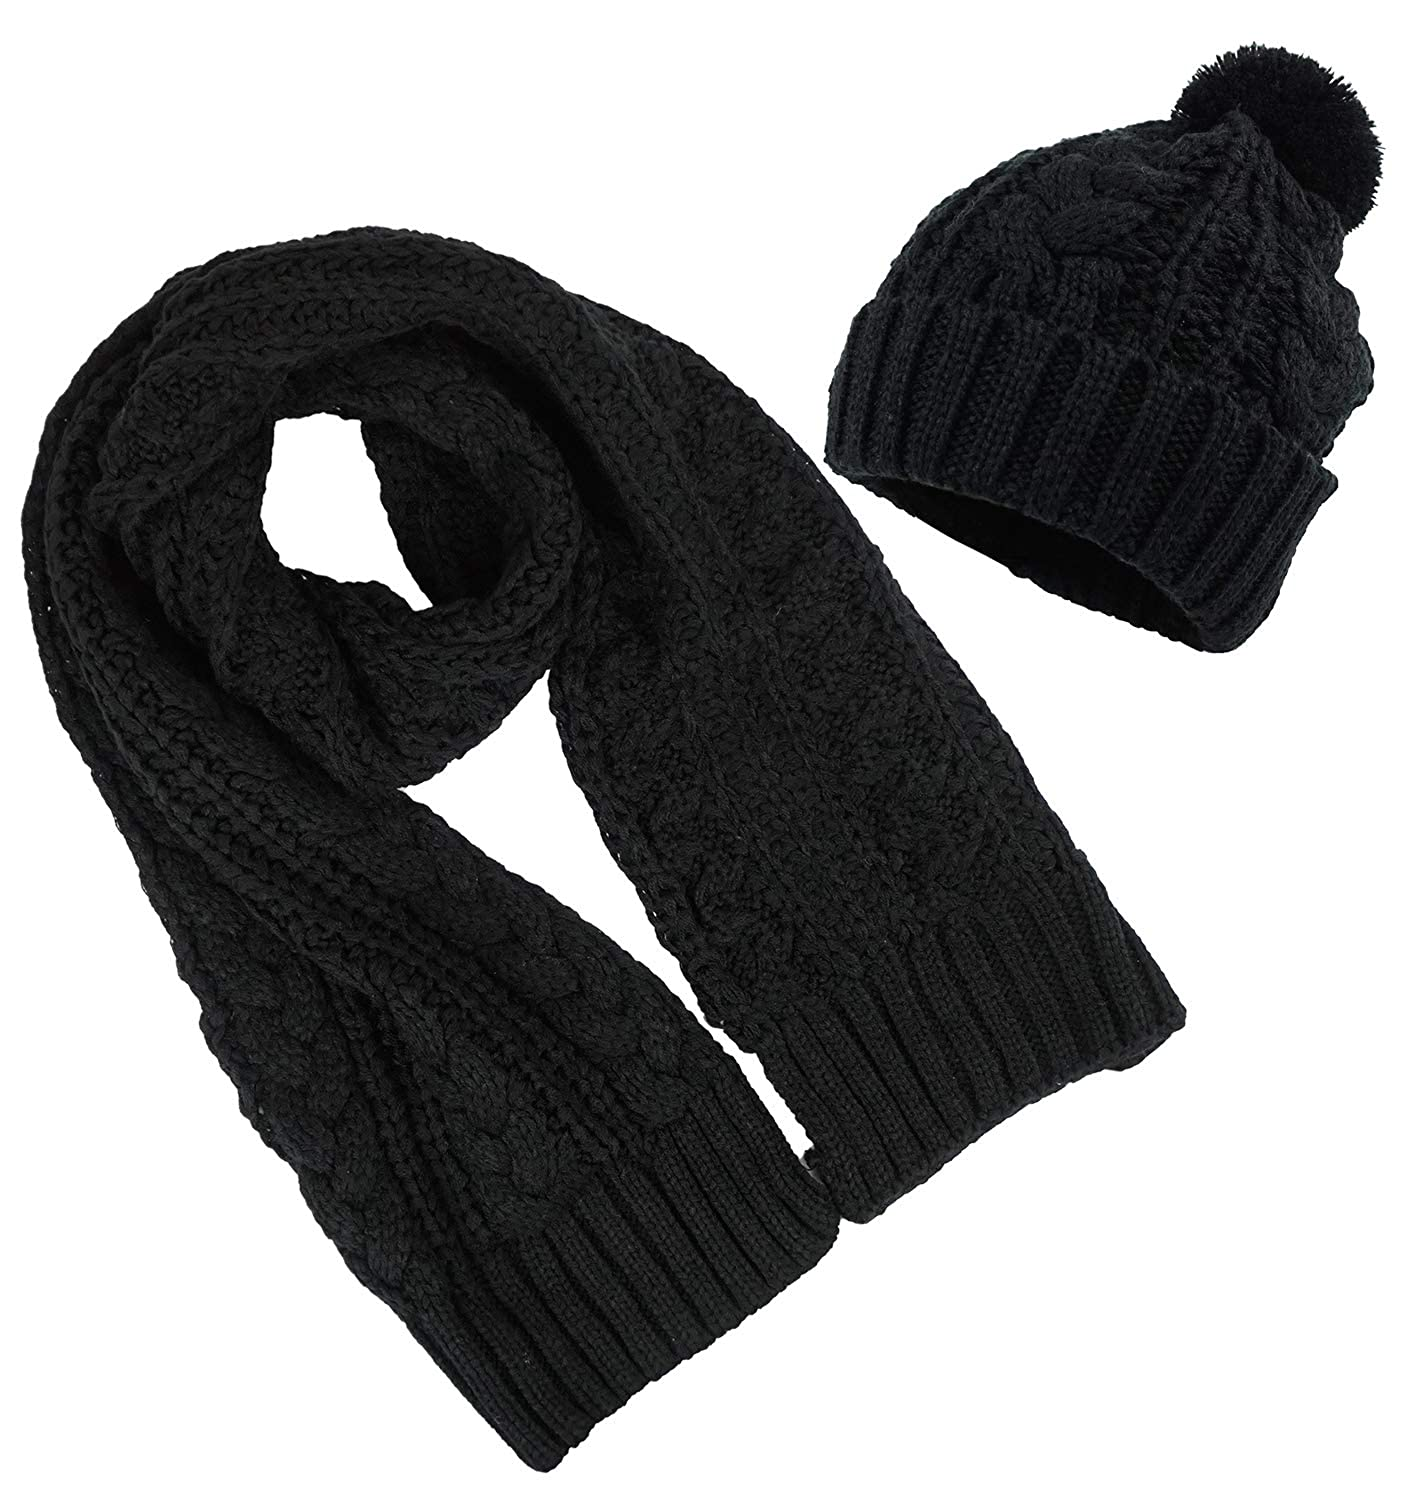 85fefb1509912c Women's Scarf and Hat 2pcs Set Knitted Warm Skullcaps Thicken Beanie Cap,  Black at Amazon Women's Clothing store: